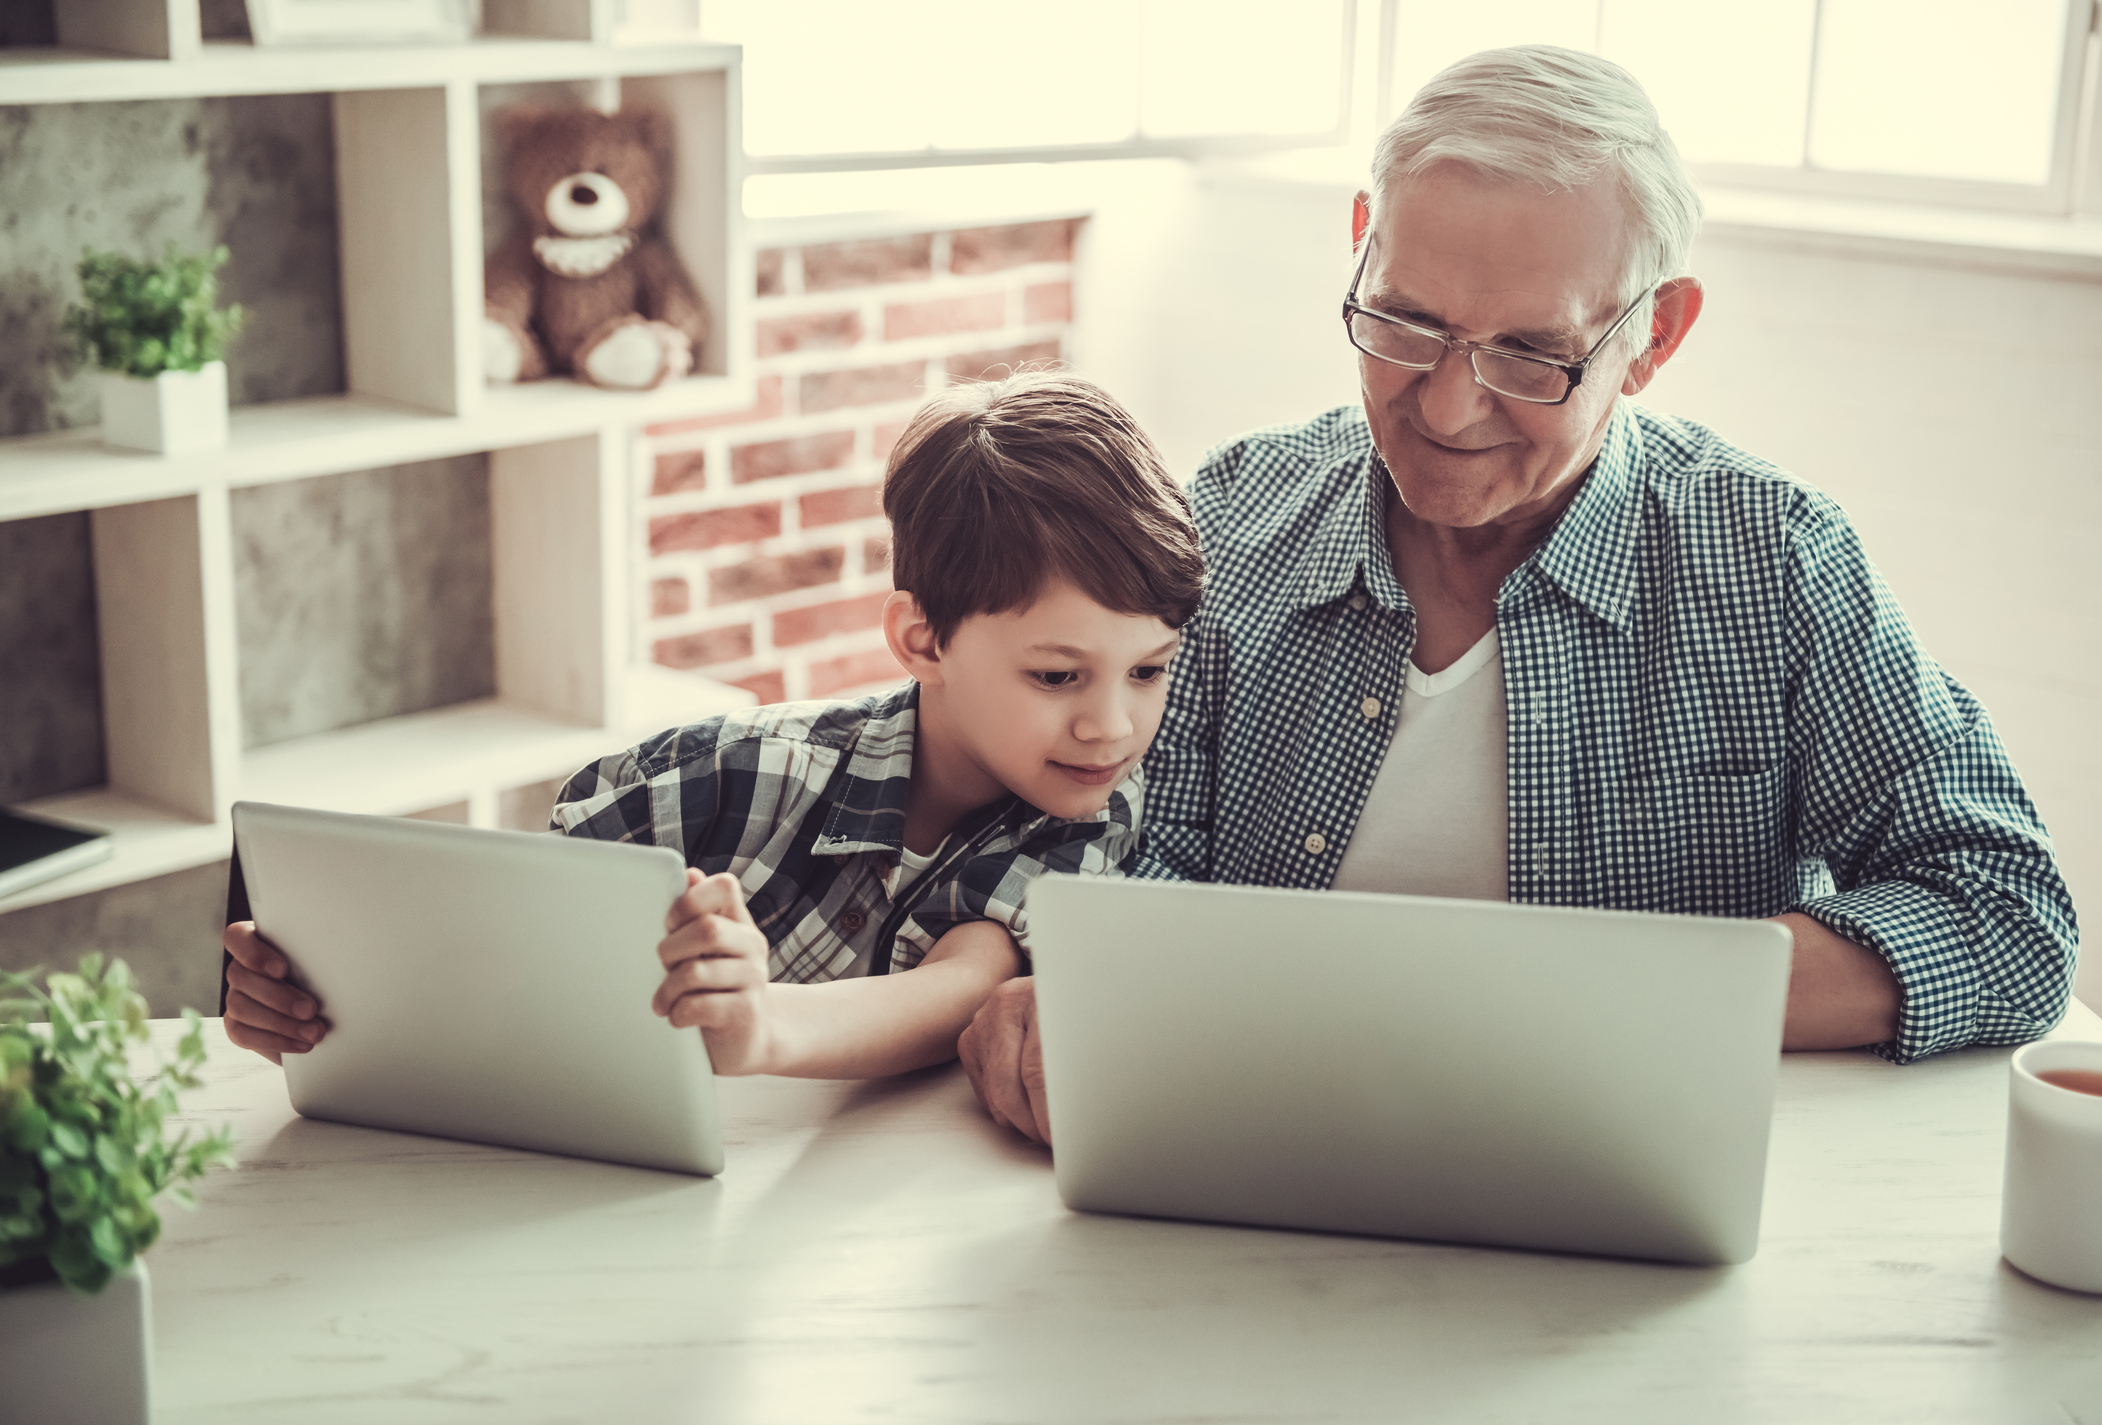 Grandpa and grandson with devices